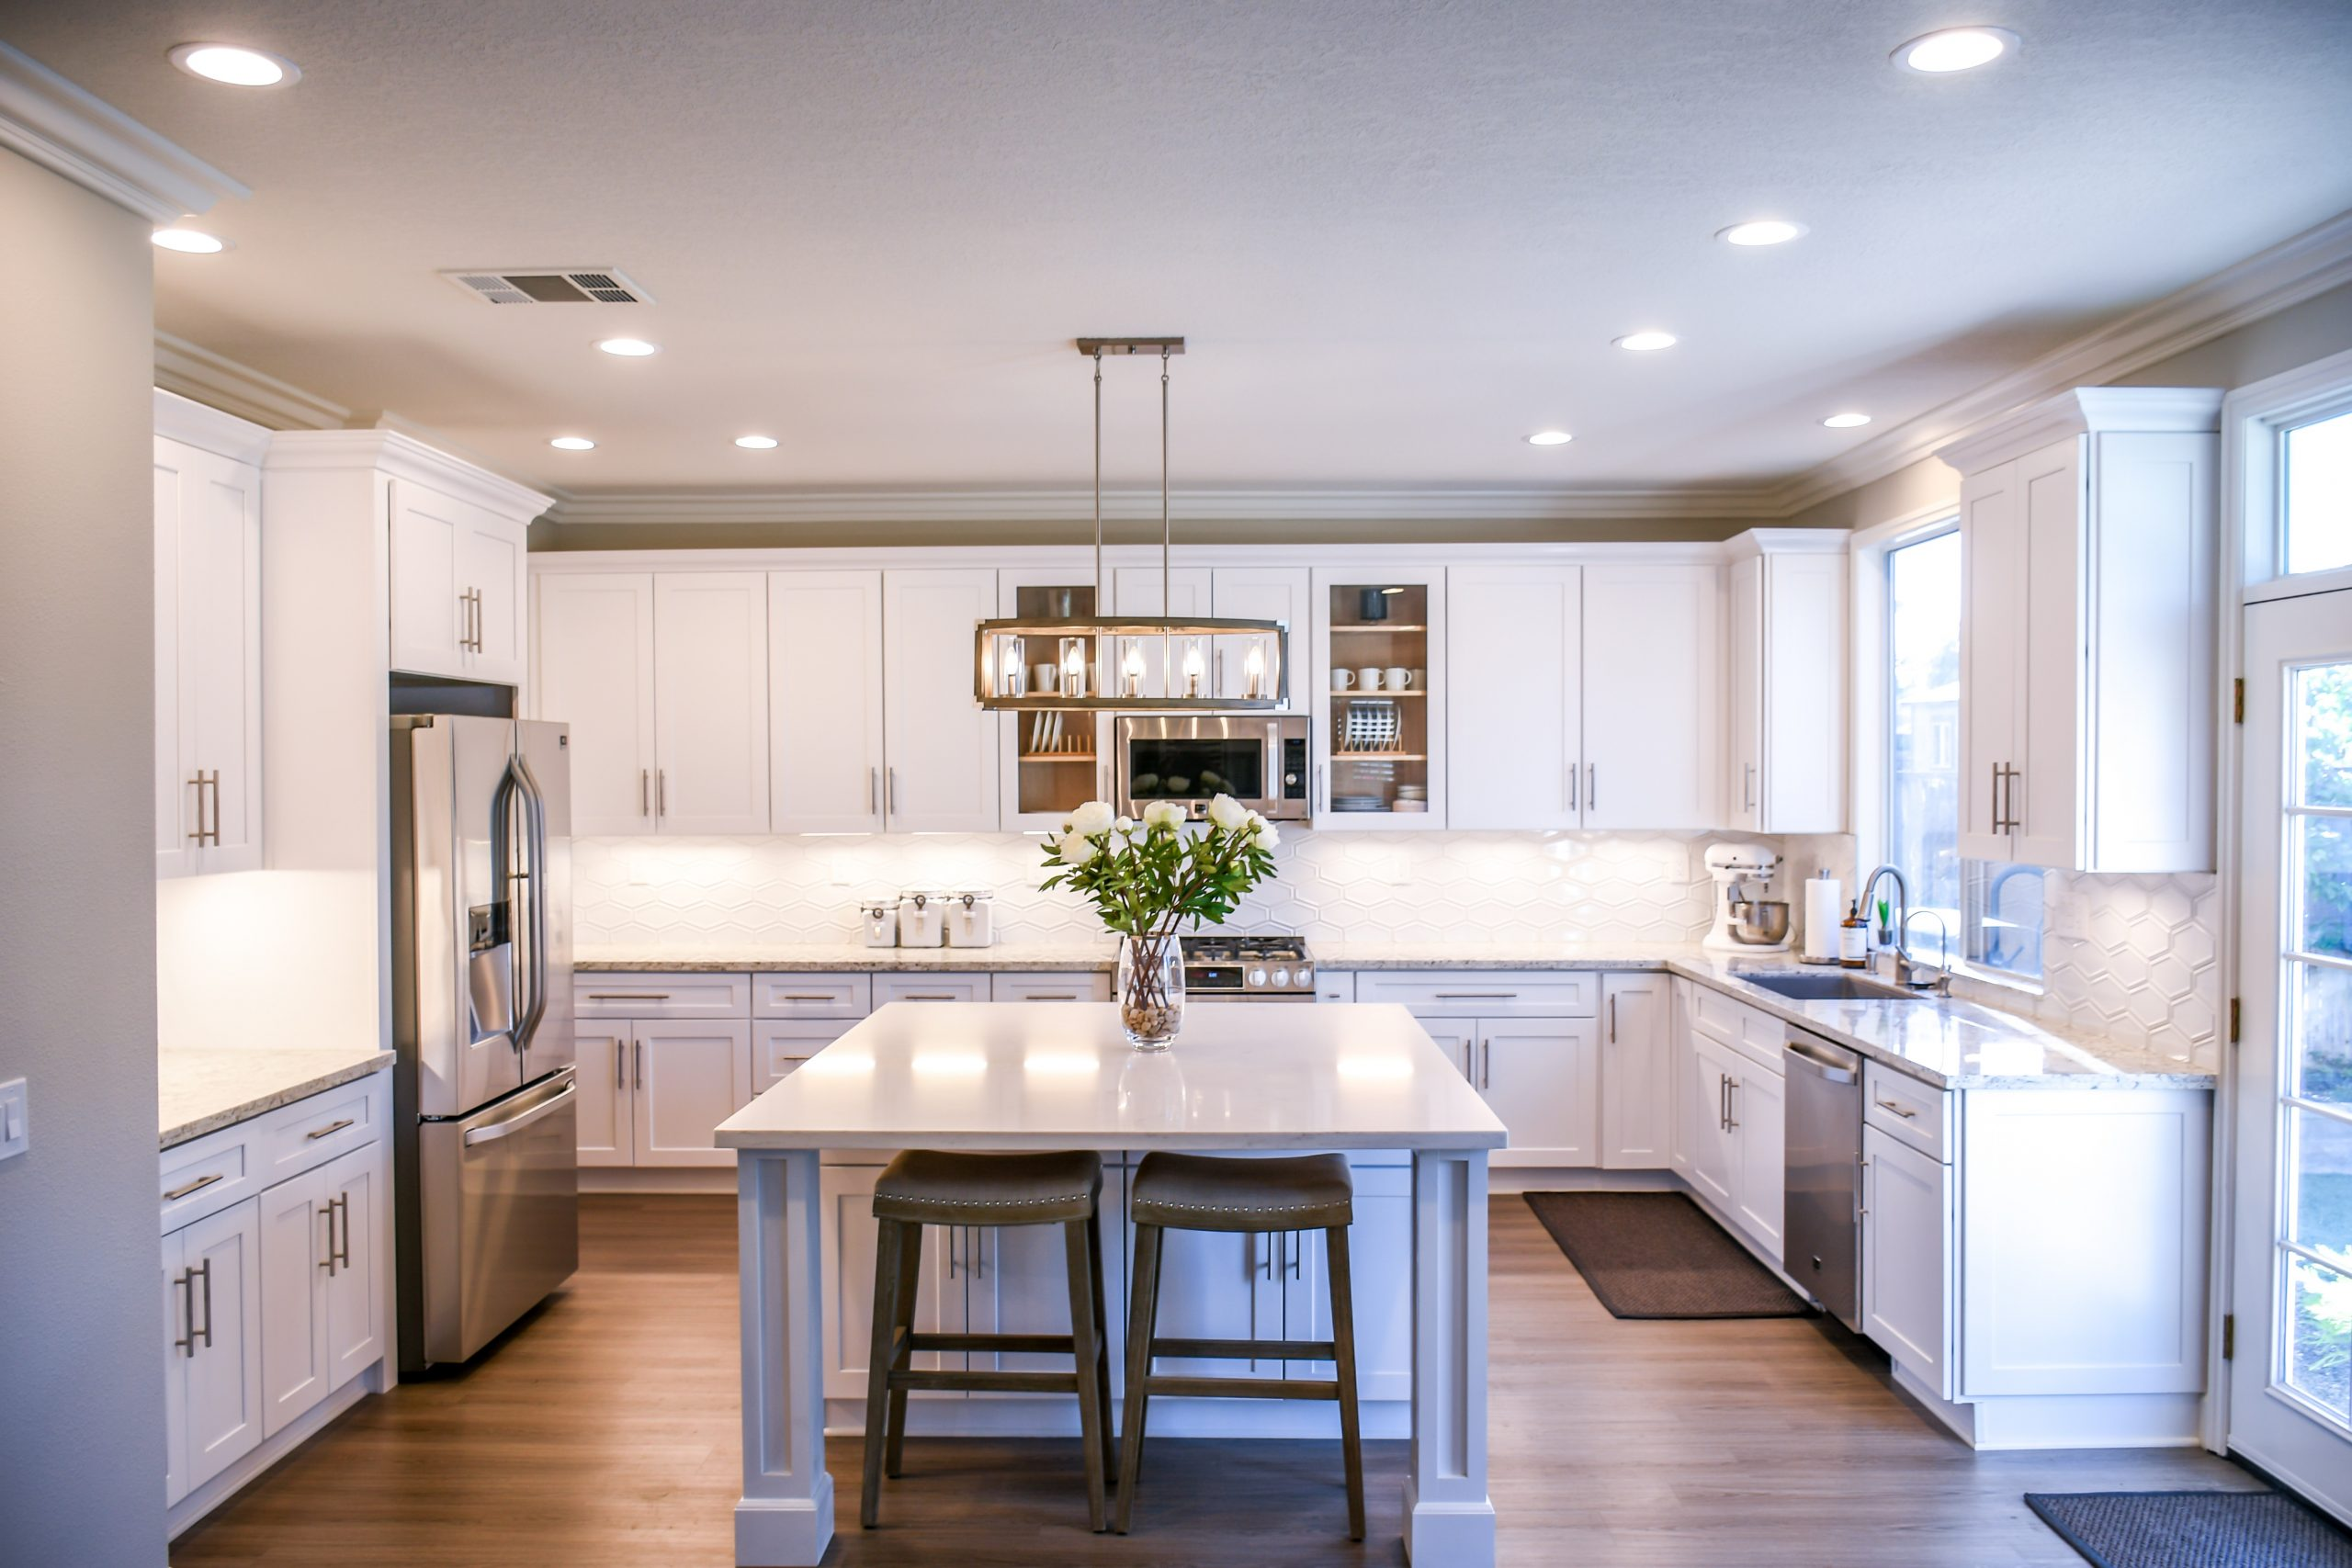 5 WAYS TO MAKE SPRING CLEANING PAY OFF